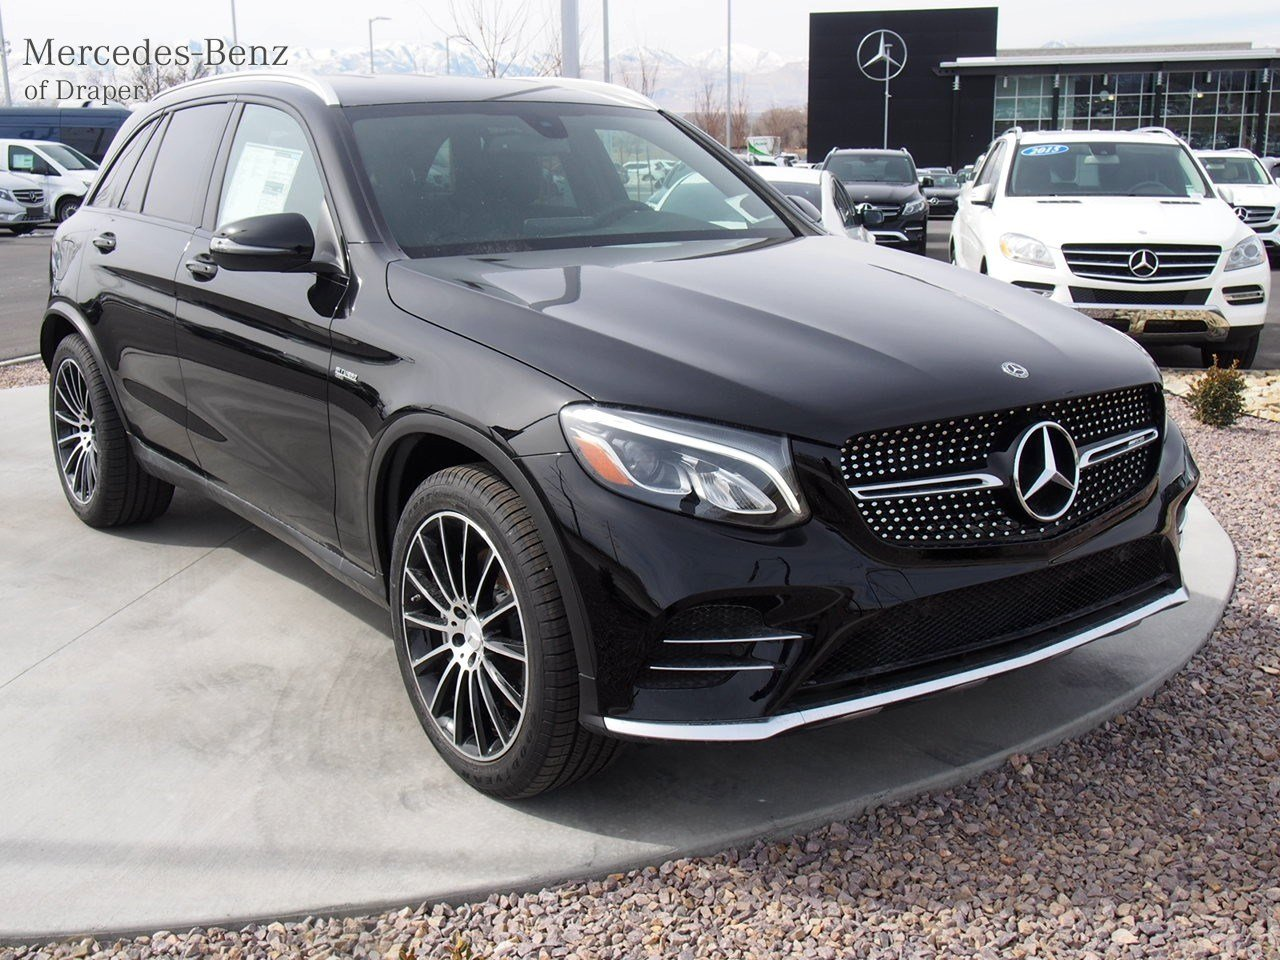 new 2018 mercedes benz glc glc 43 amg 4matic suv in draper jv011871 mercedes benz of draper. Black Bedroom Furniture Sets. Home Design Ideas